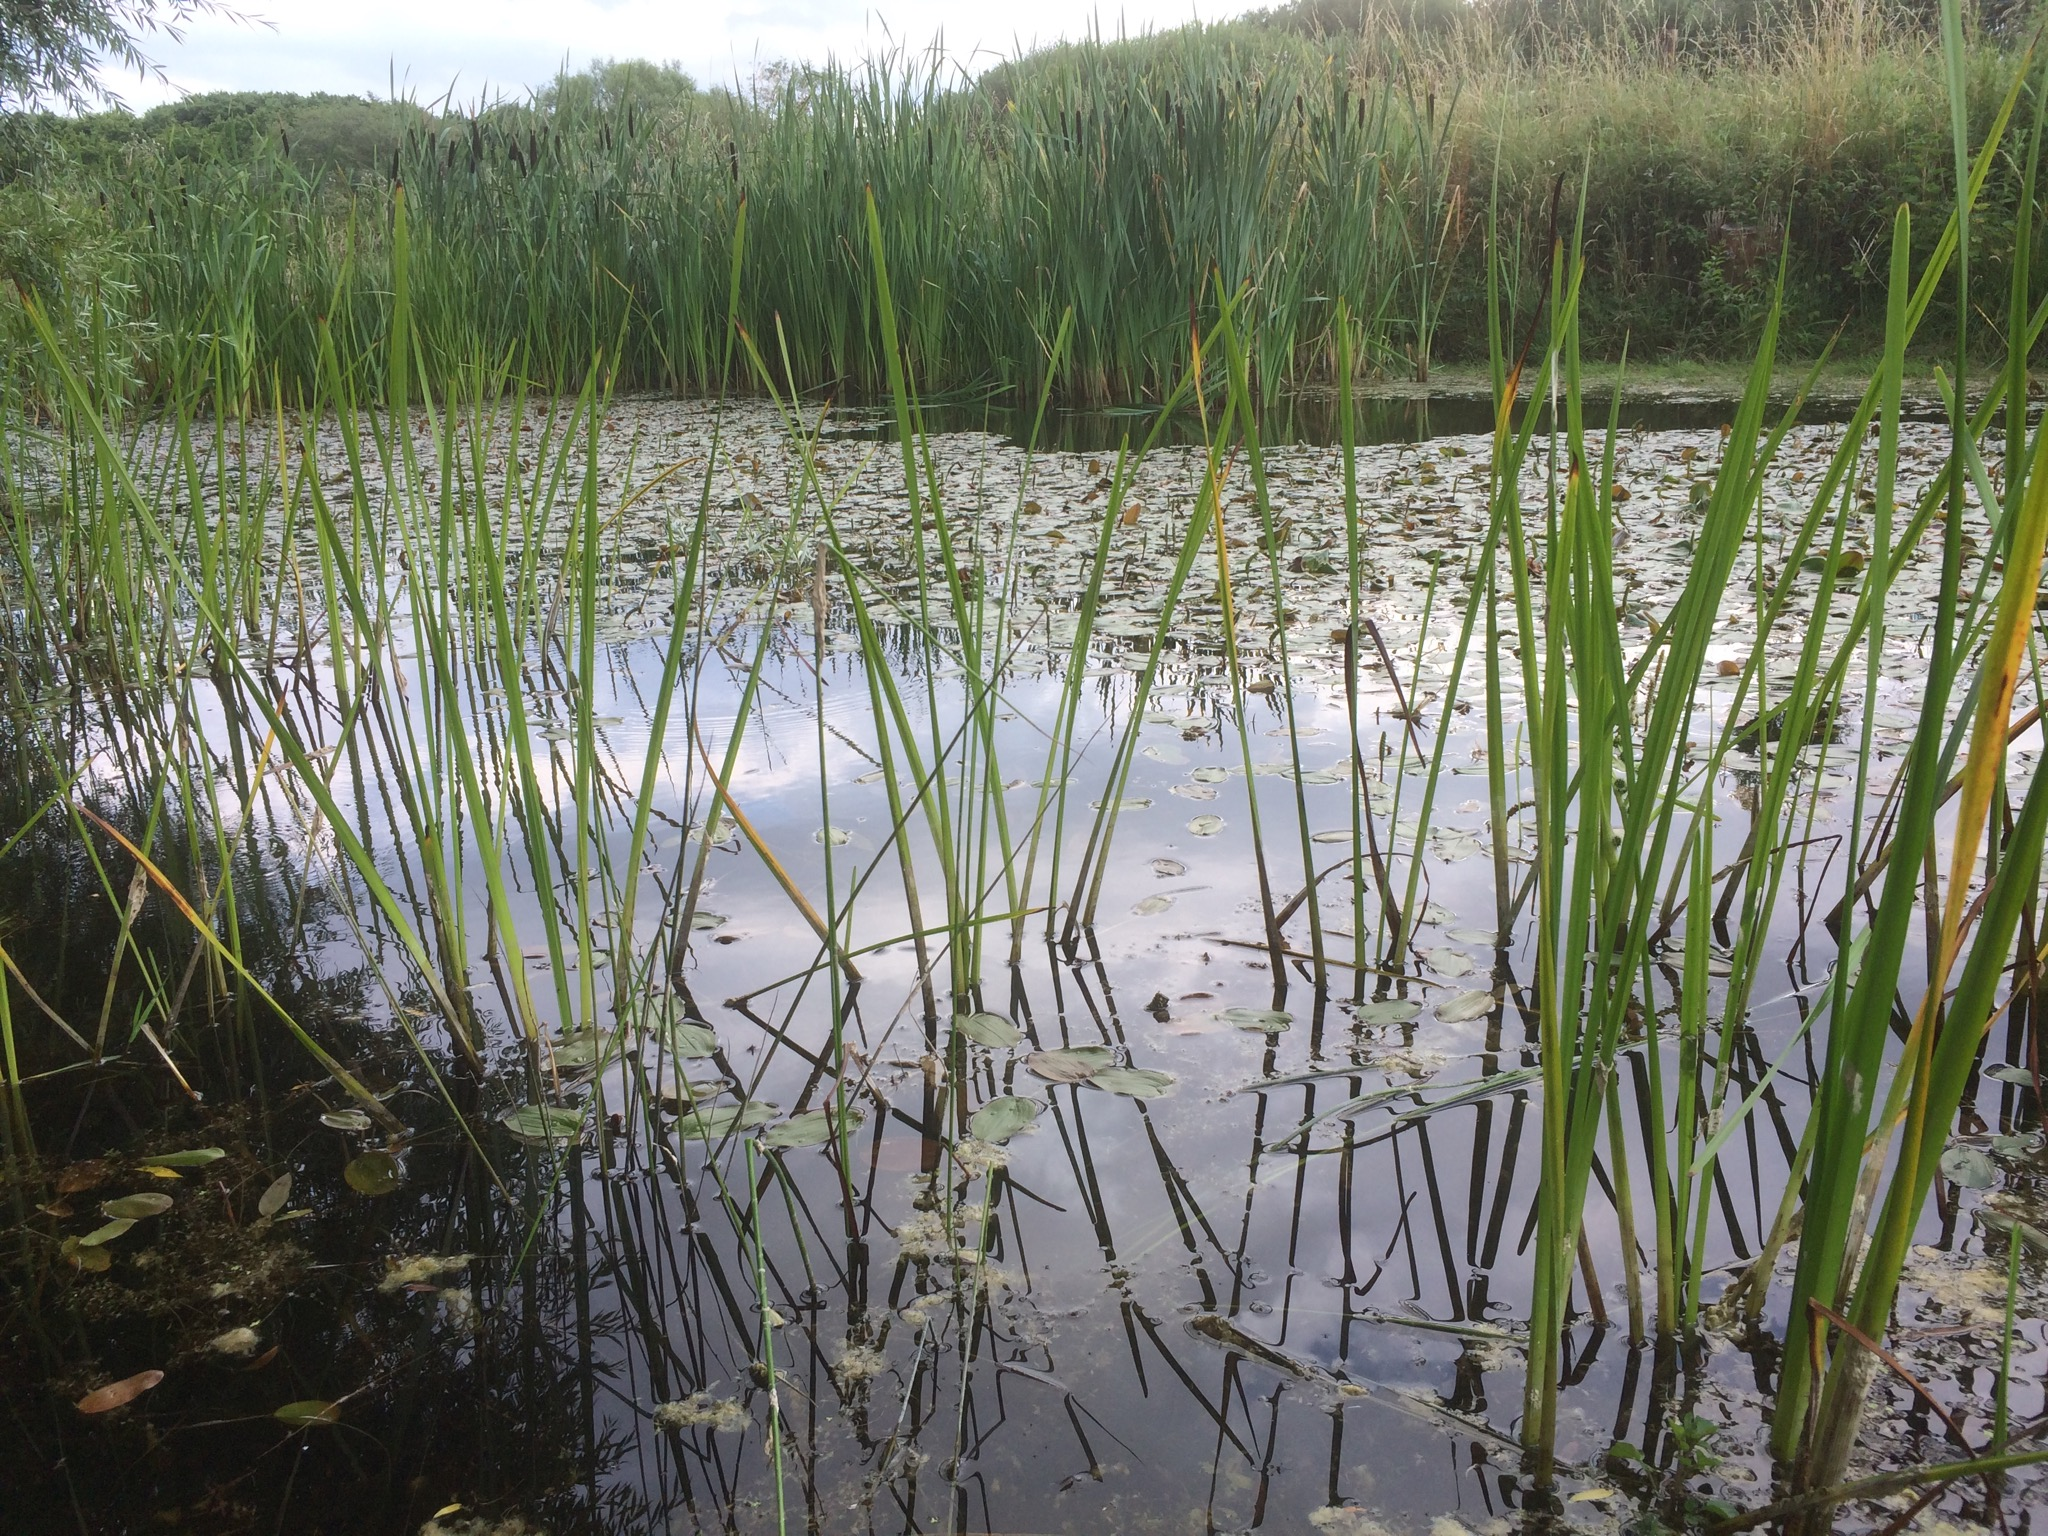 Pond restoration for wildlife: a farmer's personal account